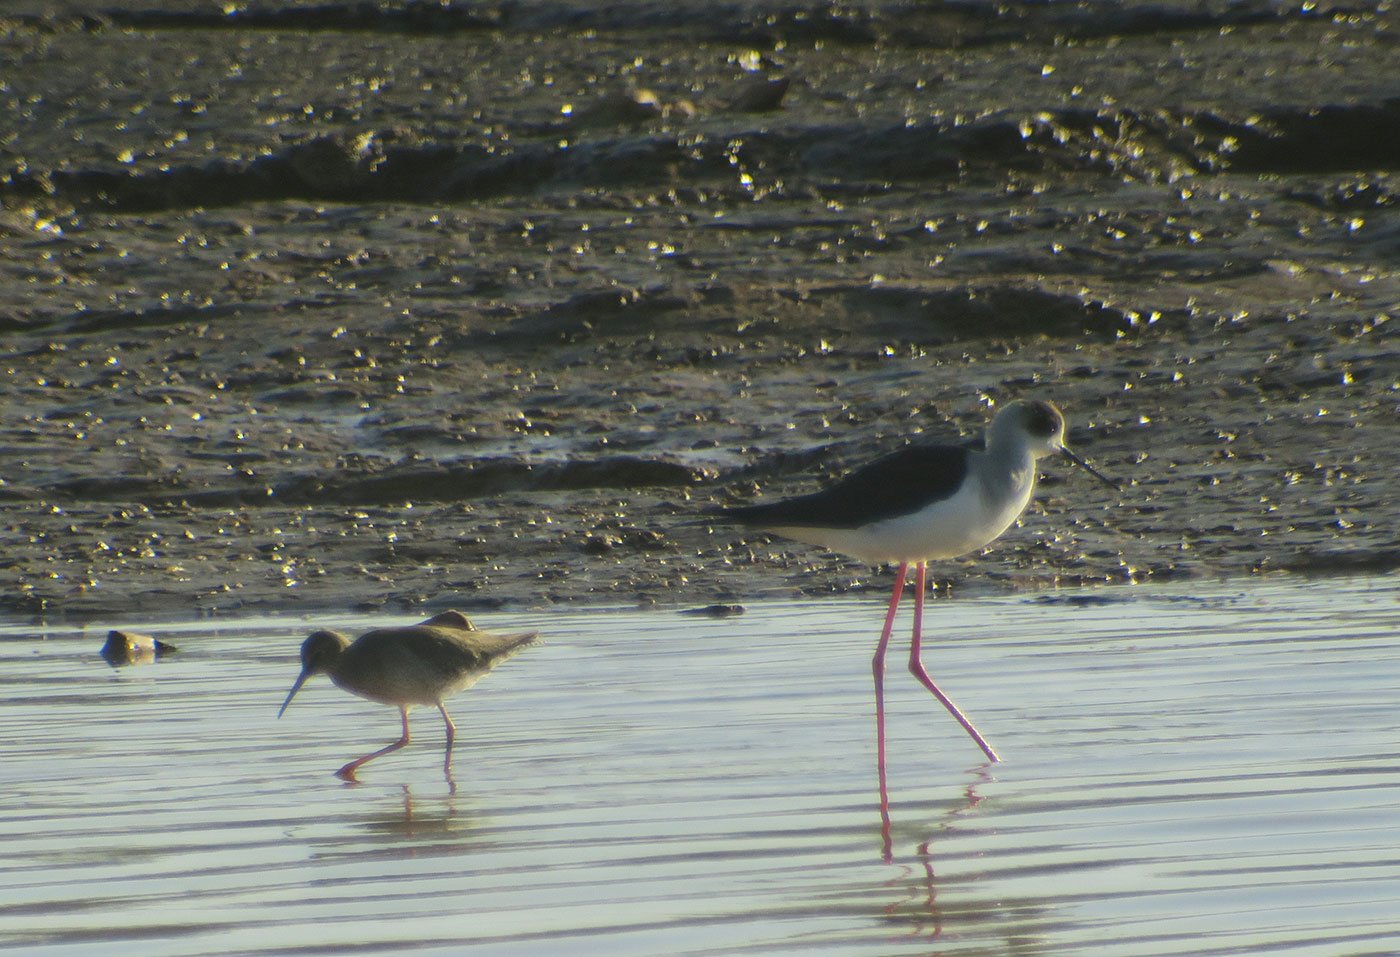 15_dunkler-wasserlaeufer_spotted-redshank_stelzenlaeufer_black-winged-stilt_fluss_souss_agadir_2018-11-28_5247